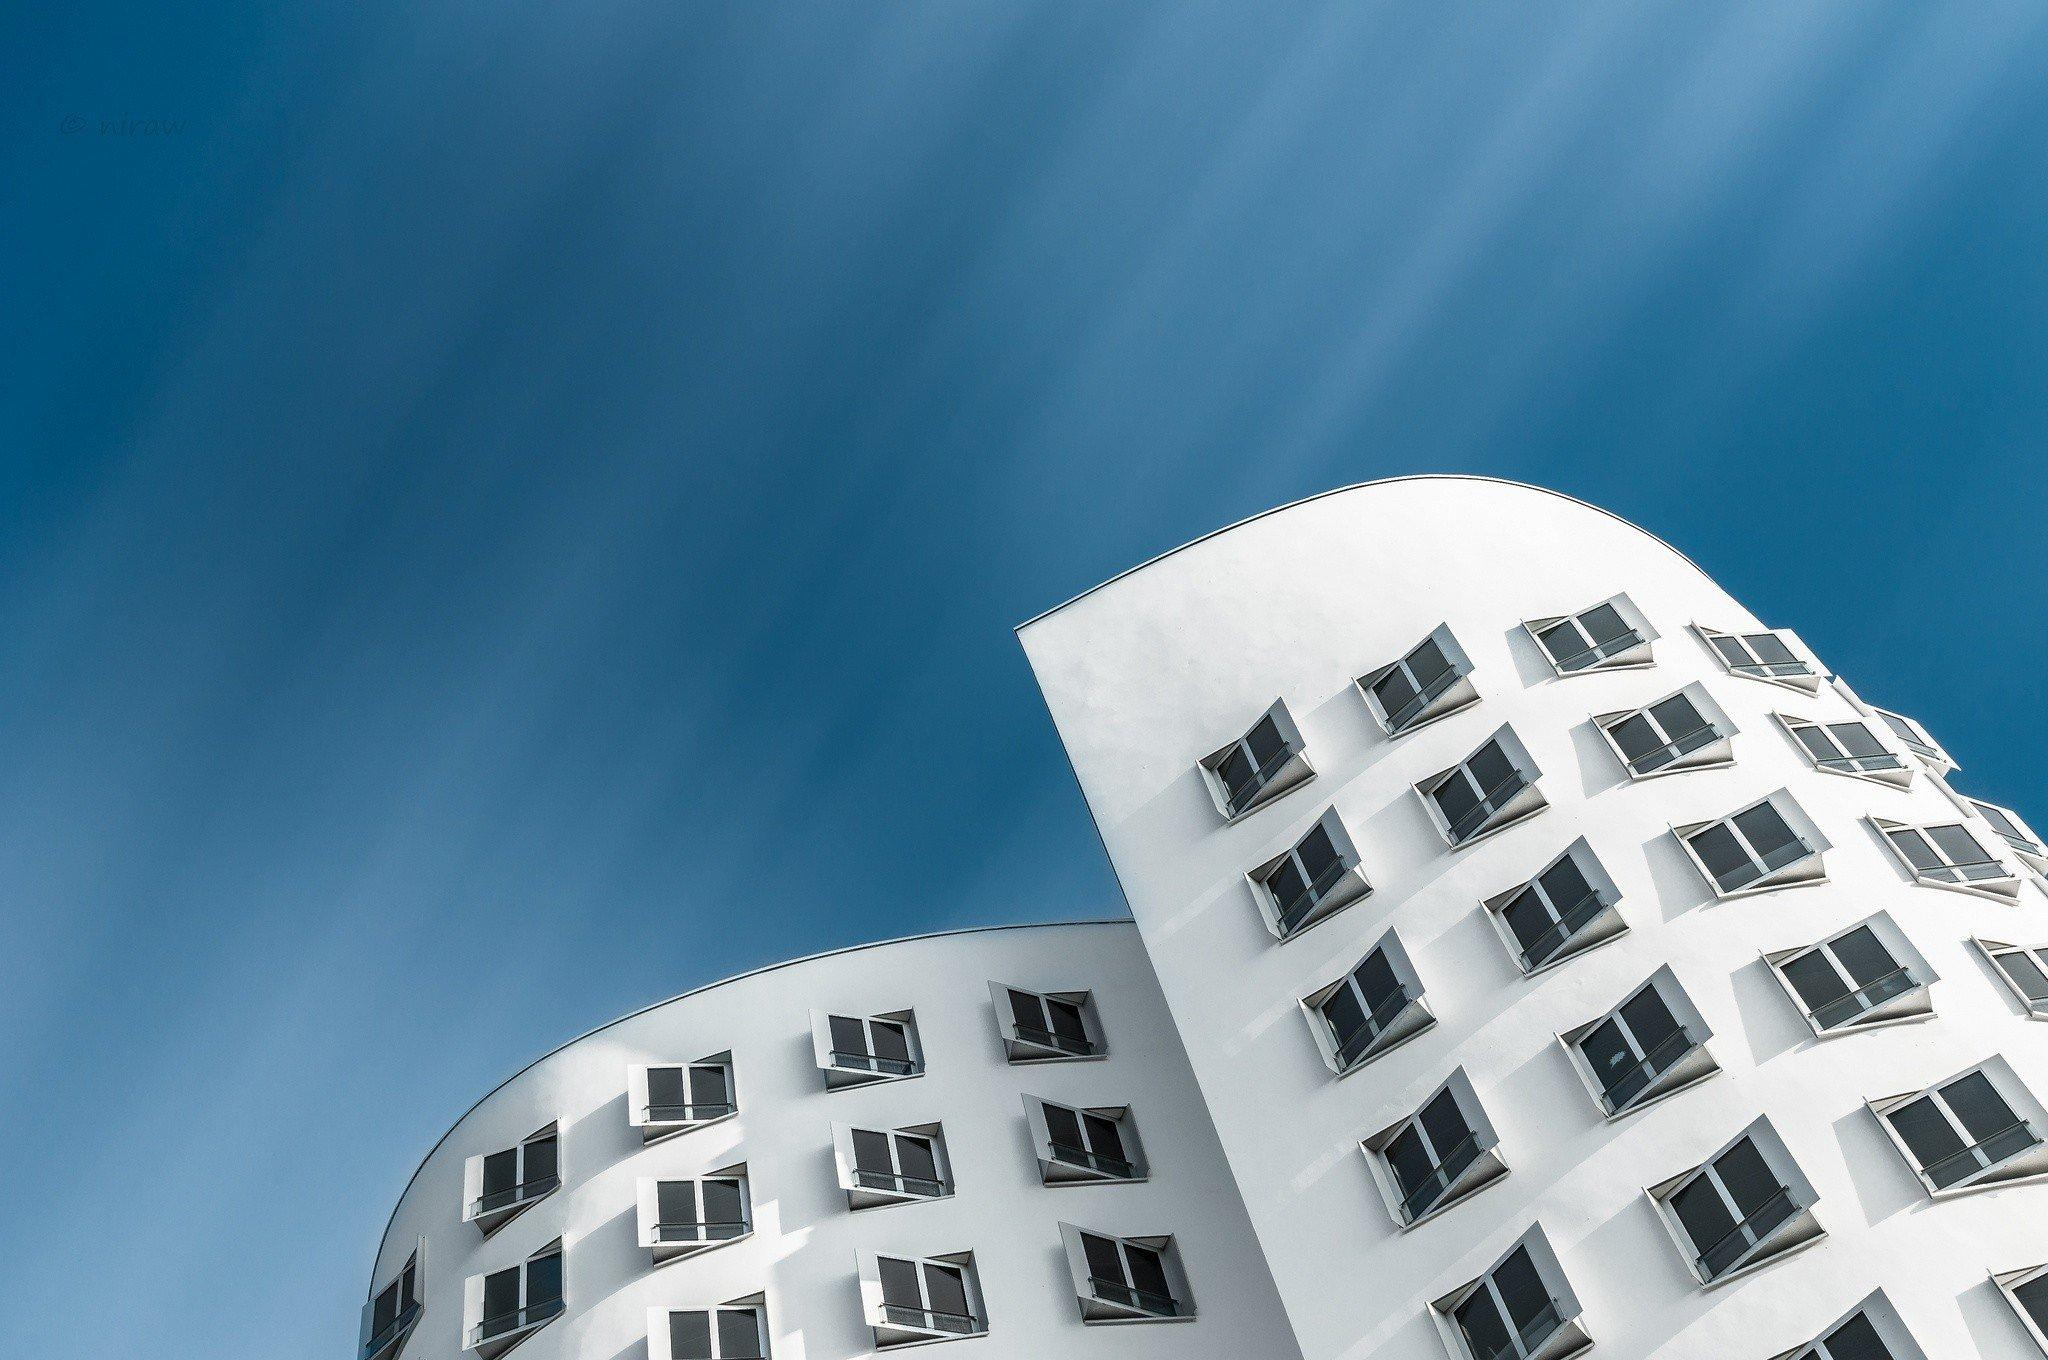 Düsseldorf, Architecture, Germany, Gehry House, Building, Worms eye ...